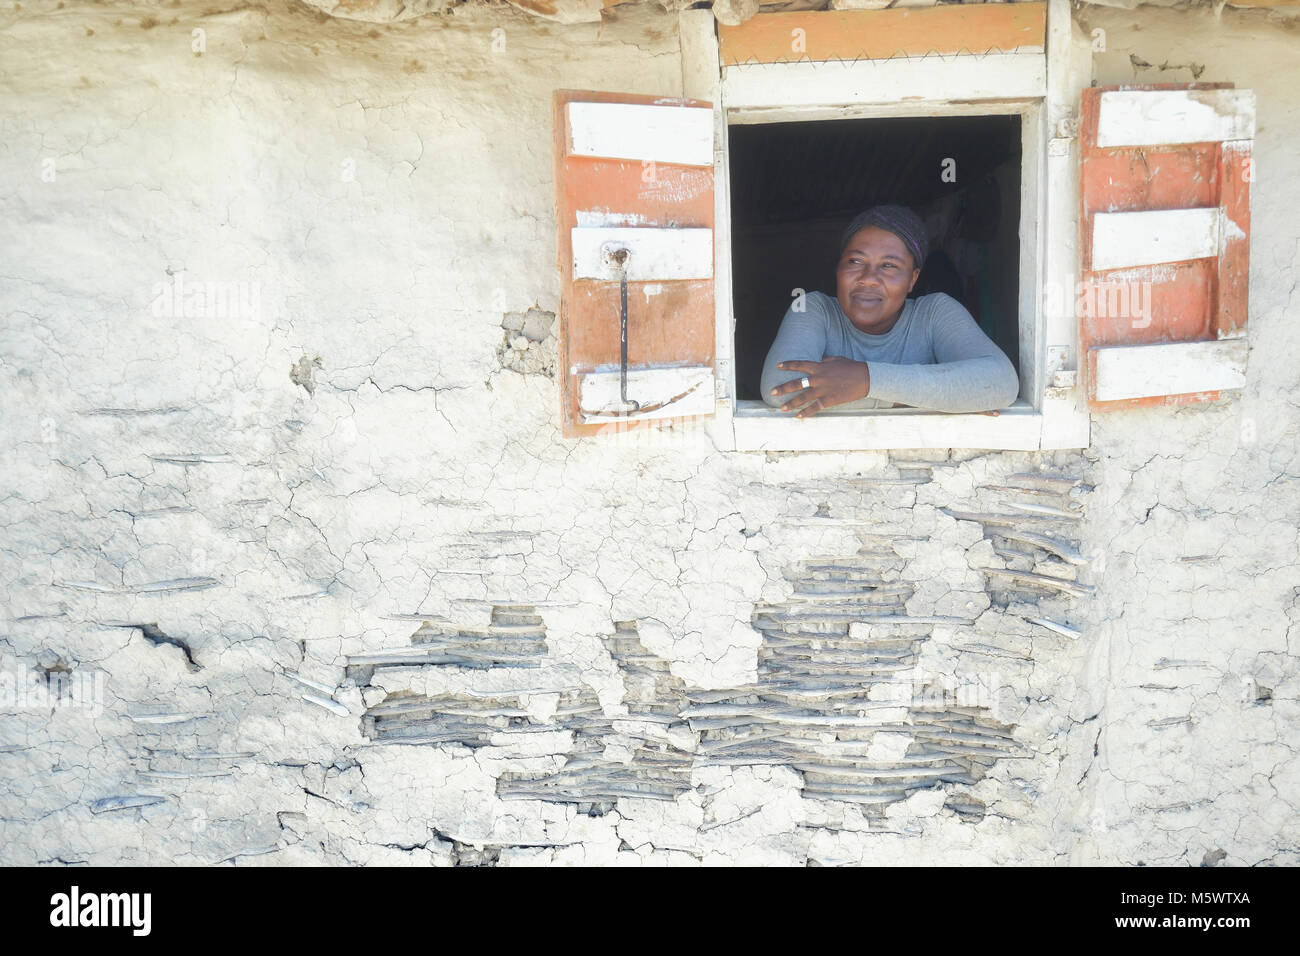 Michel Louis Marie looks out the window of a house in the Haitian community of Ganthier. - Stock Image